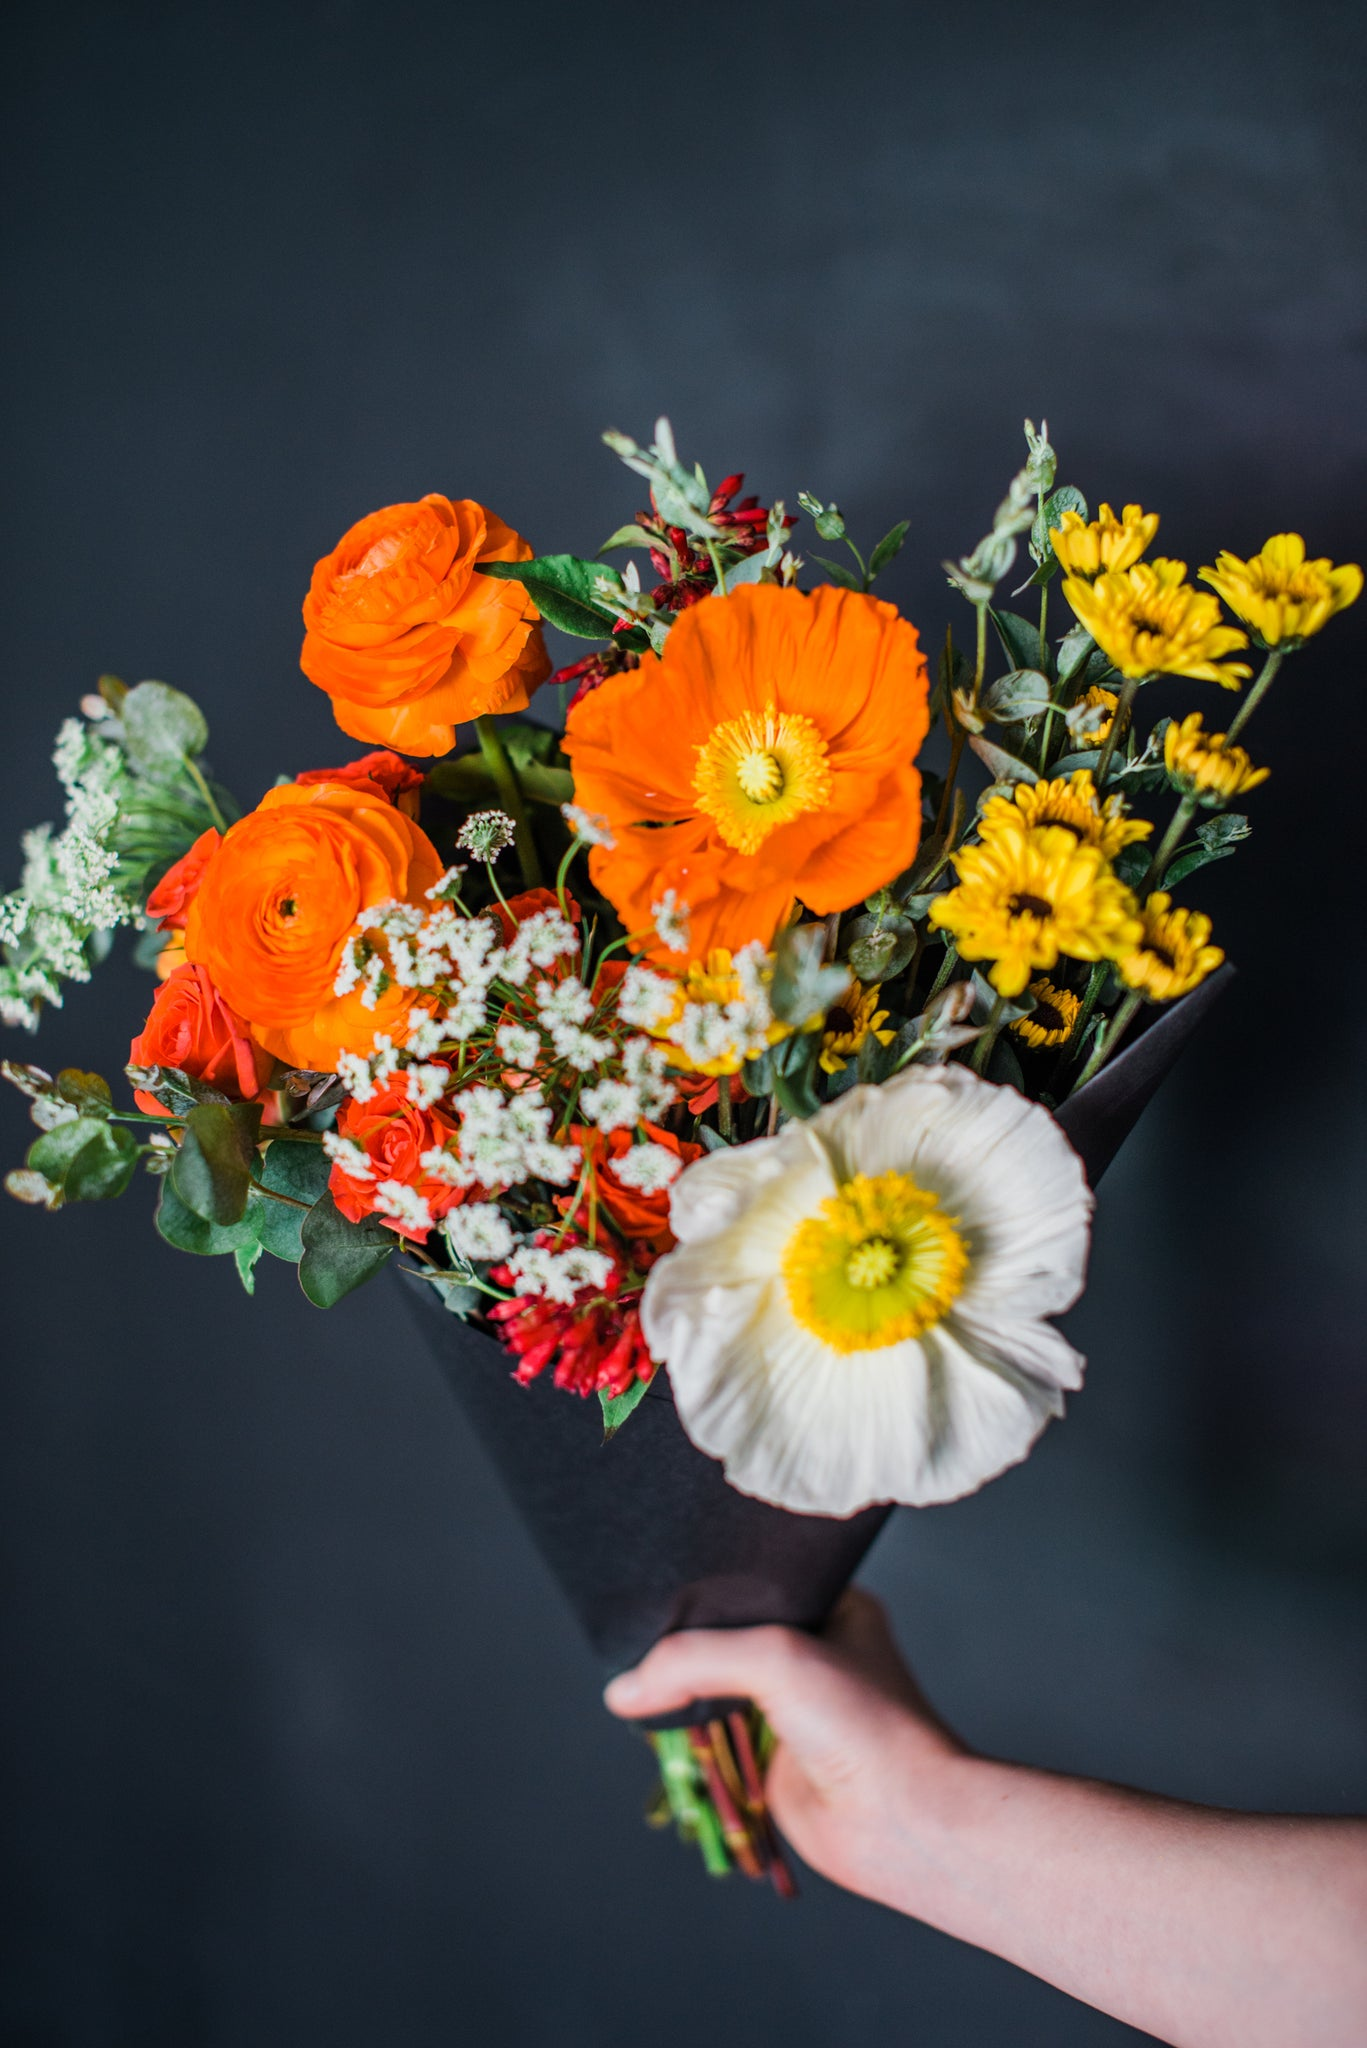 Hand holding a bouquet of colorful flowers against a dark background.